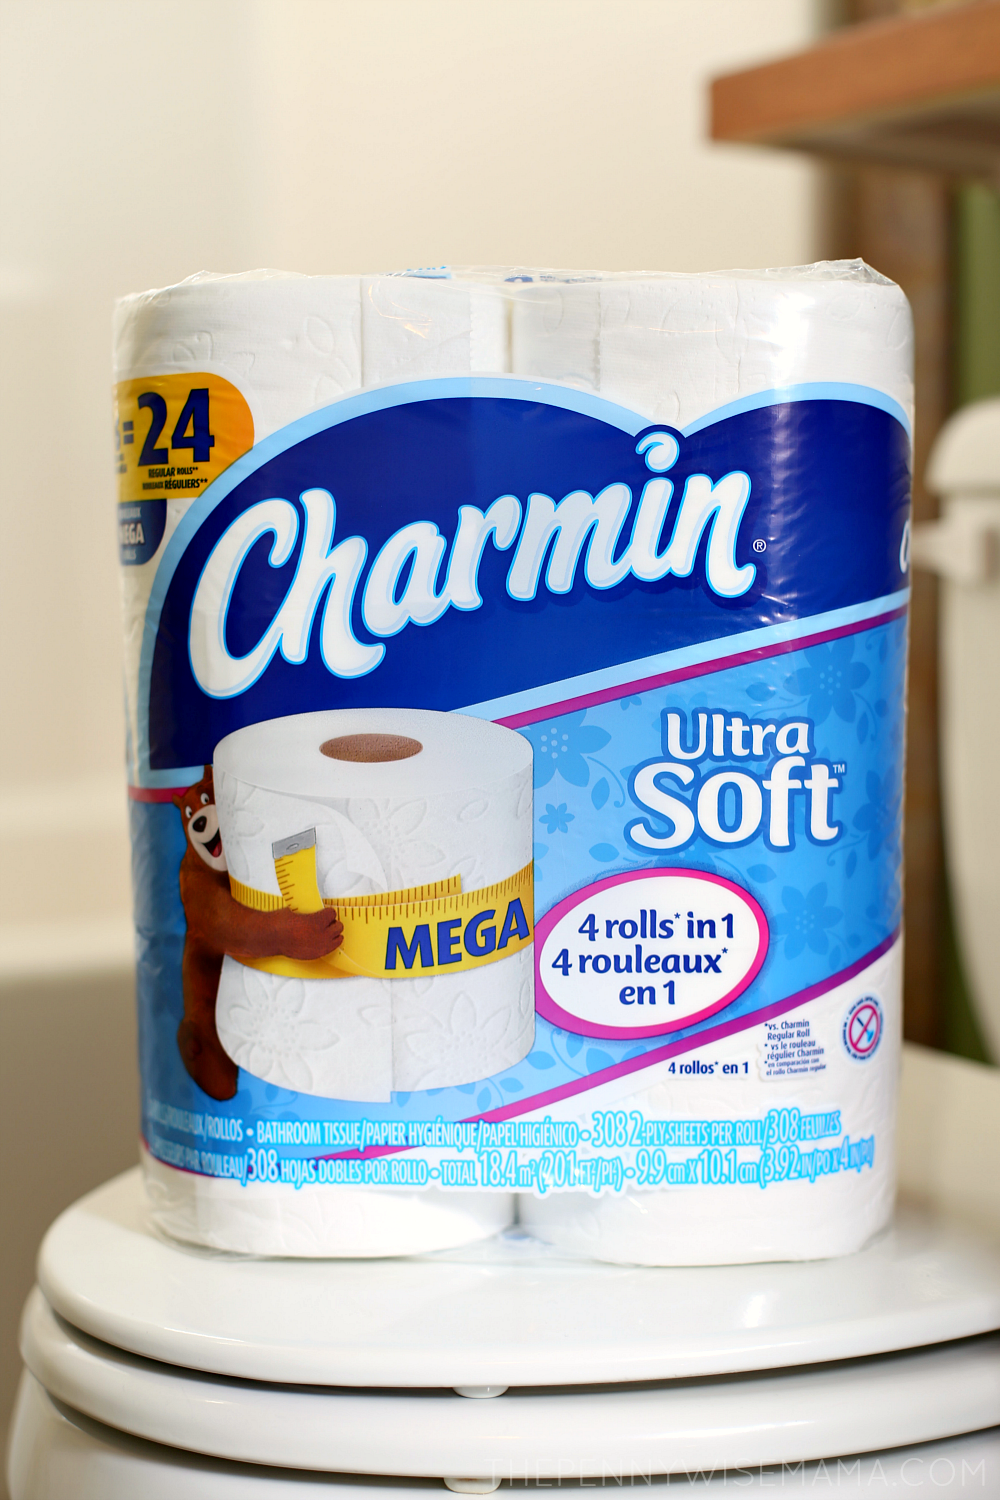 Last Minute Thanksgiving Getaways: Make Sure You Stock Up On Charmin Ultra Soft Mega Roll For